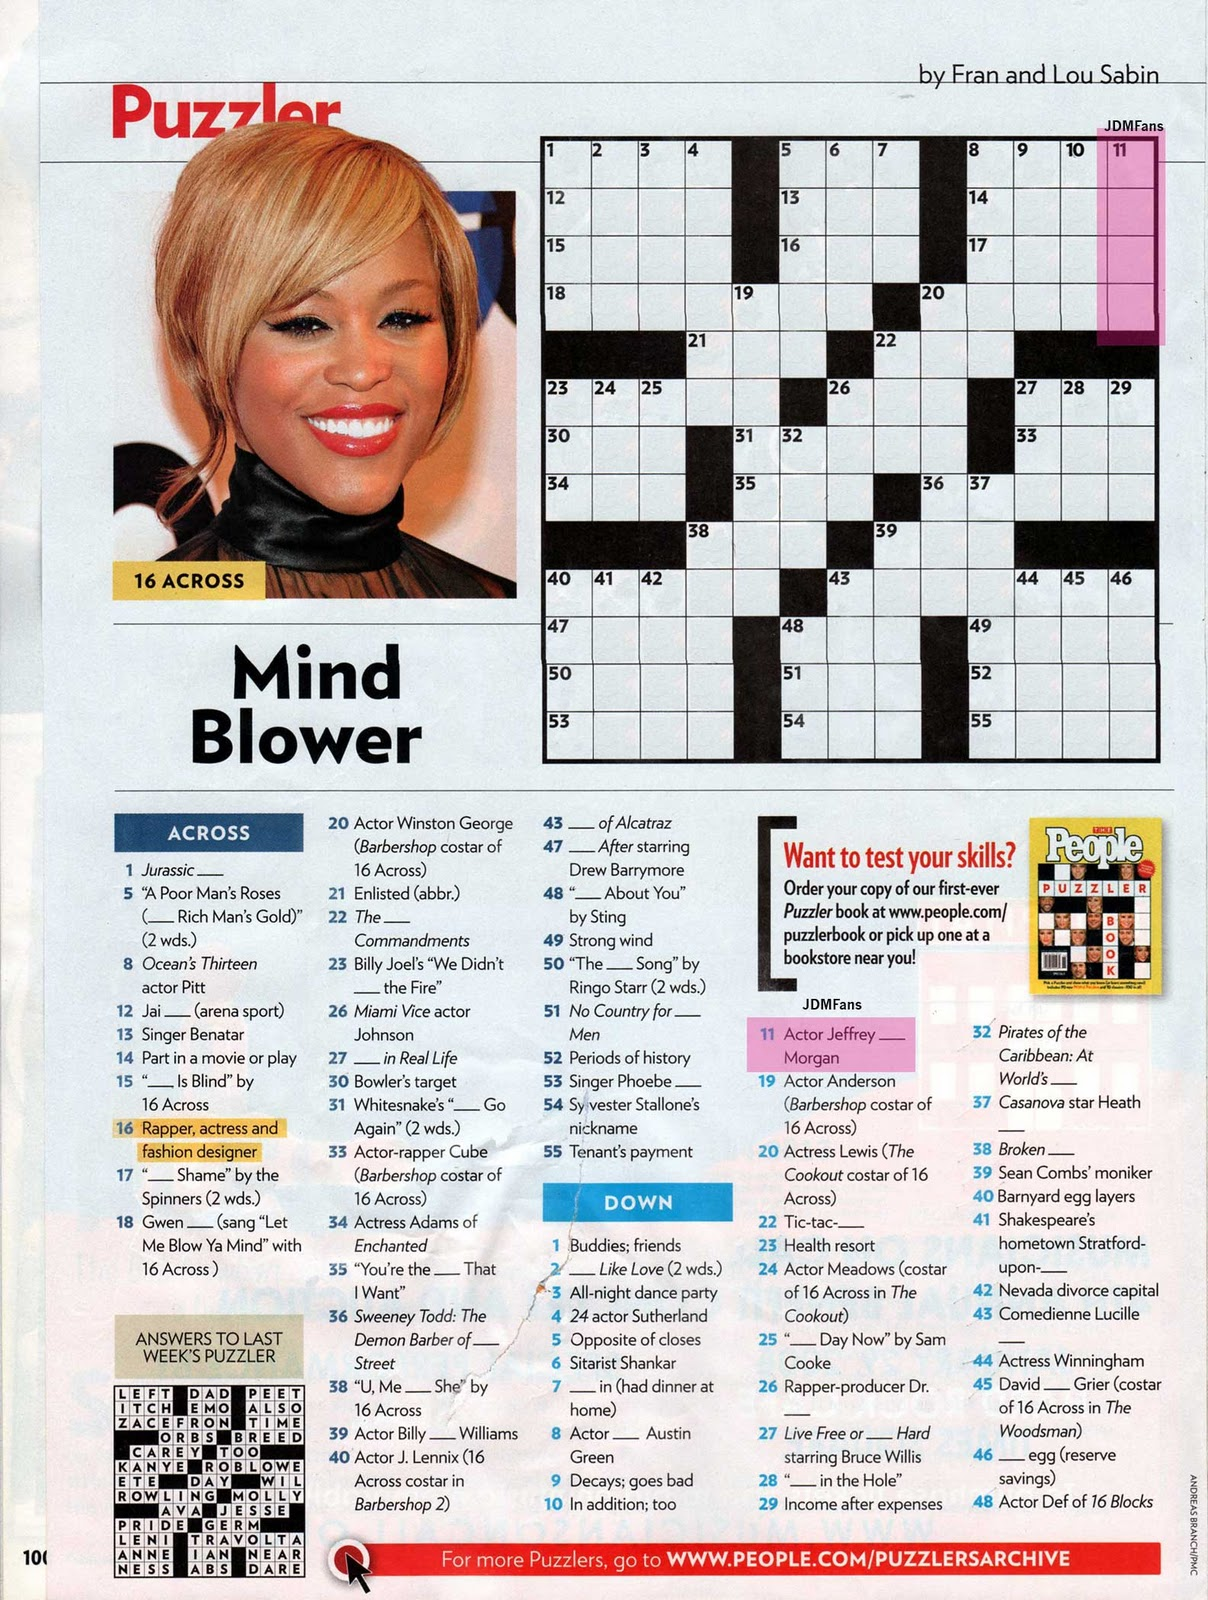 Intrepid image with regard to people magazine crossword printable